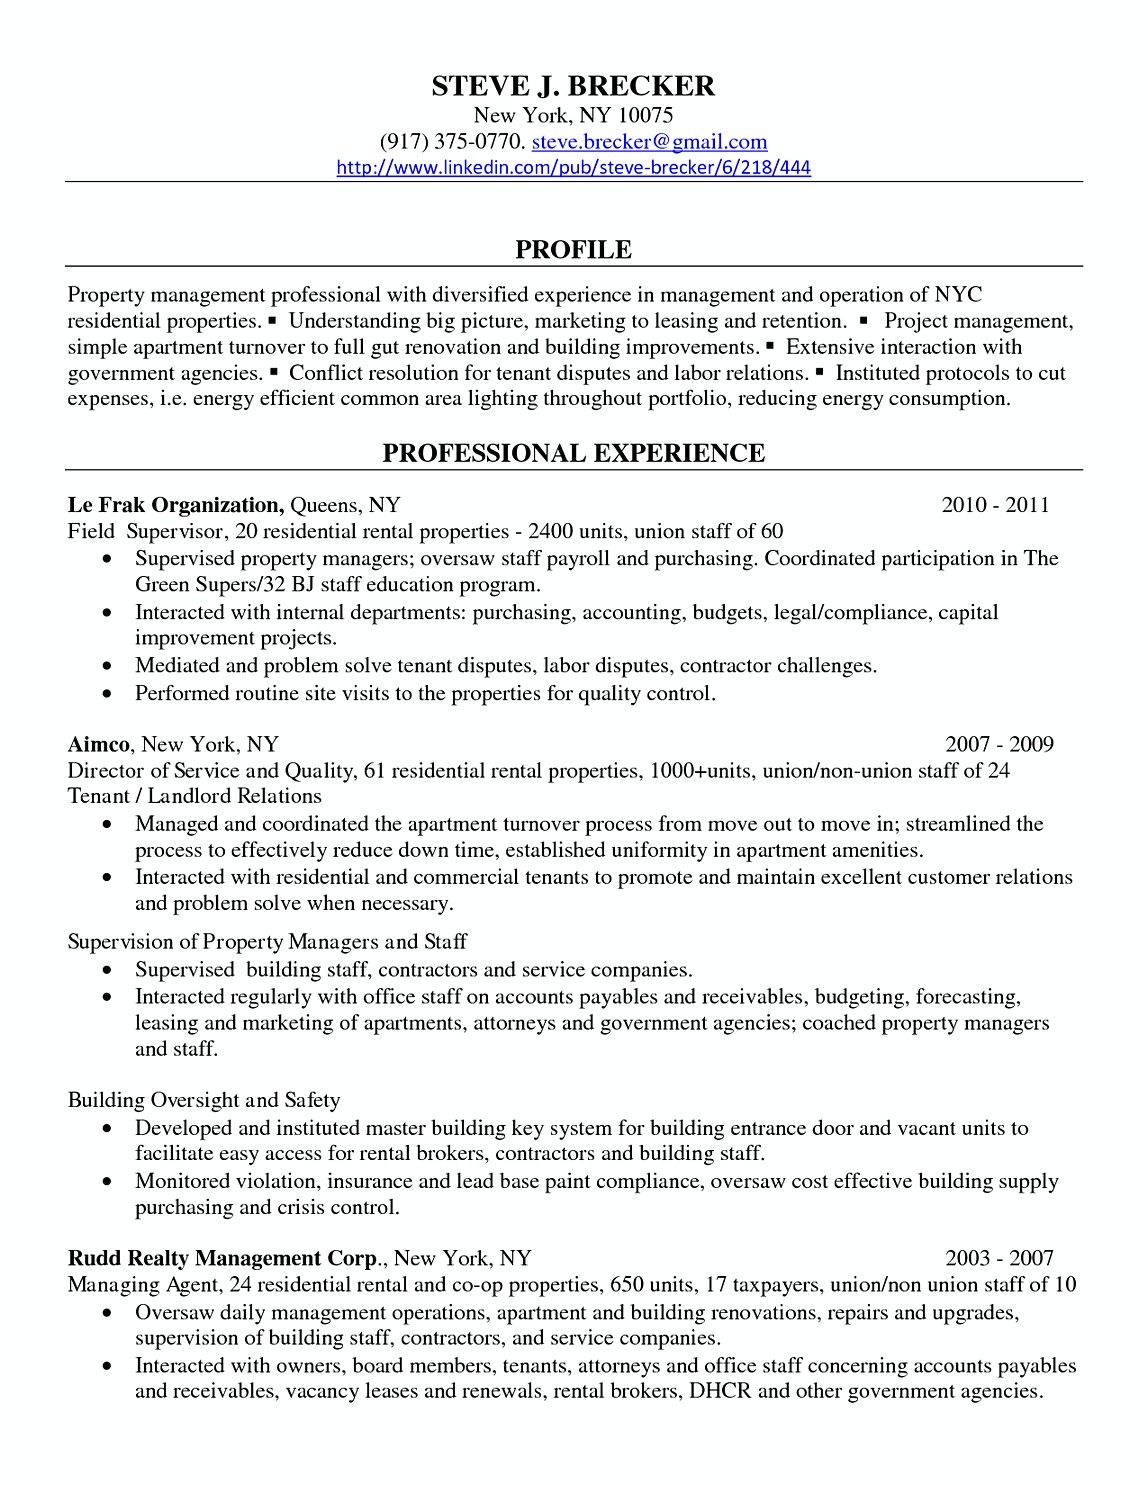 Apartment Manager Resume Beauteous Property Manager Professional Resume Samples  Commercial Property .